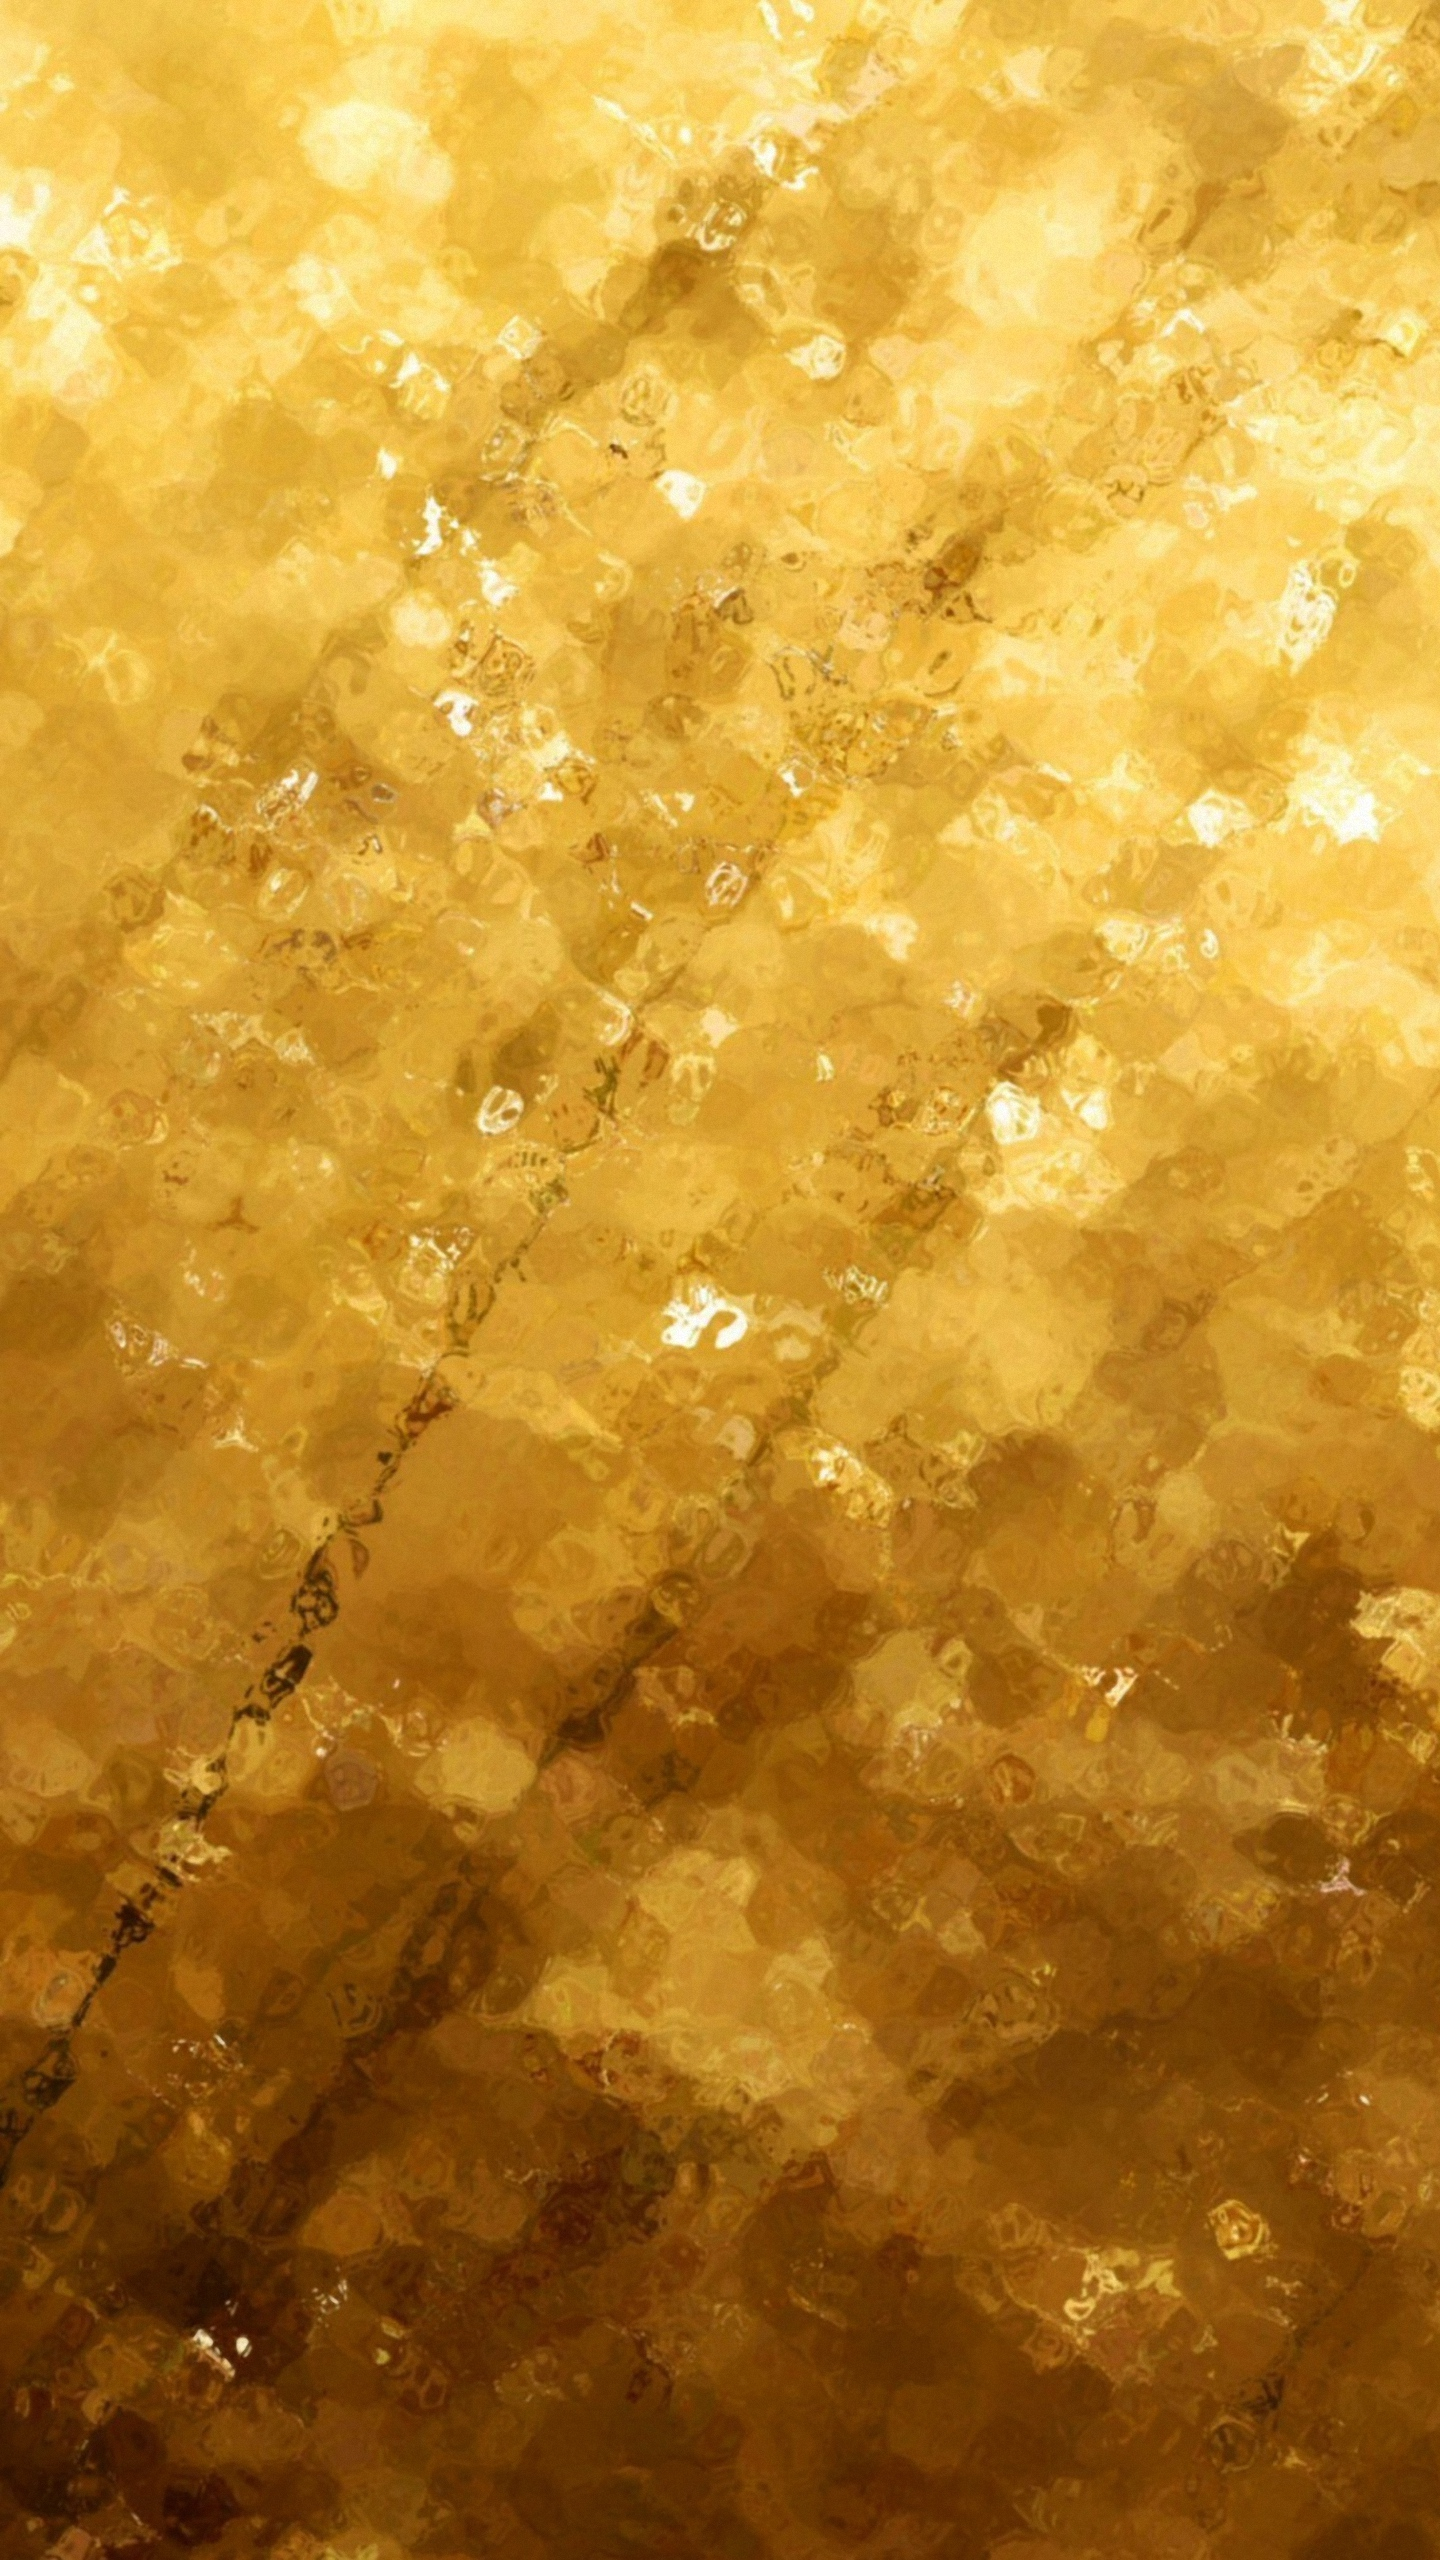 Galaxy S6 Hd 1440x2560 Gold Texture Samsung Wallpapers